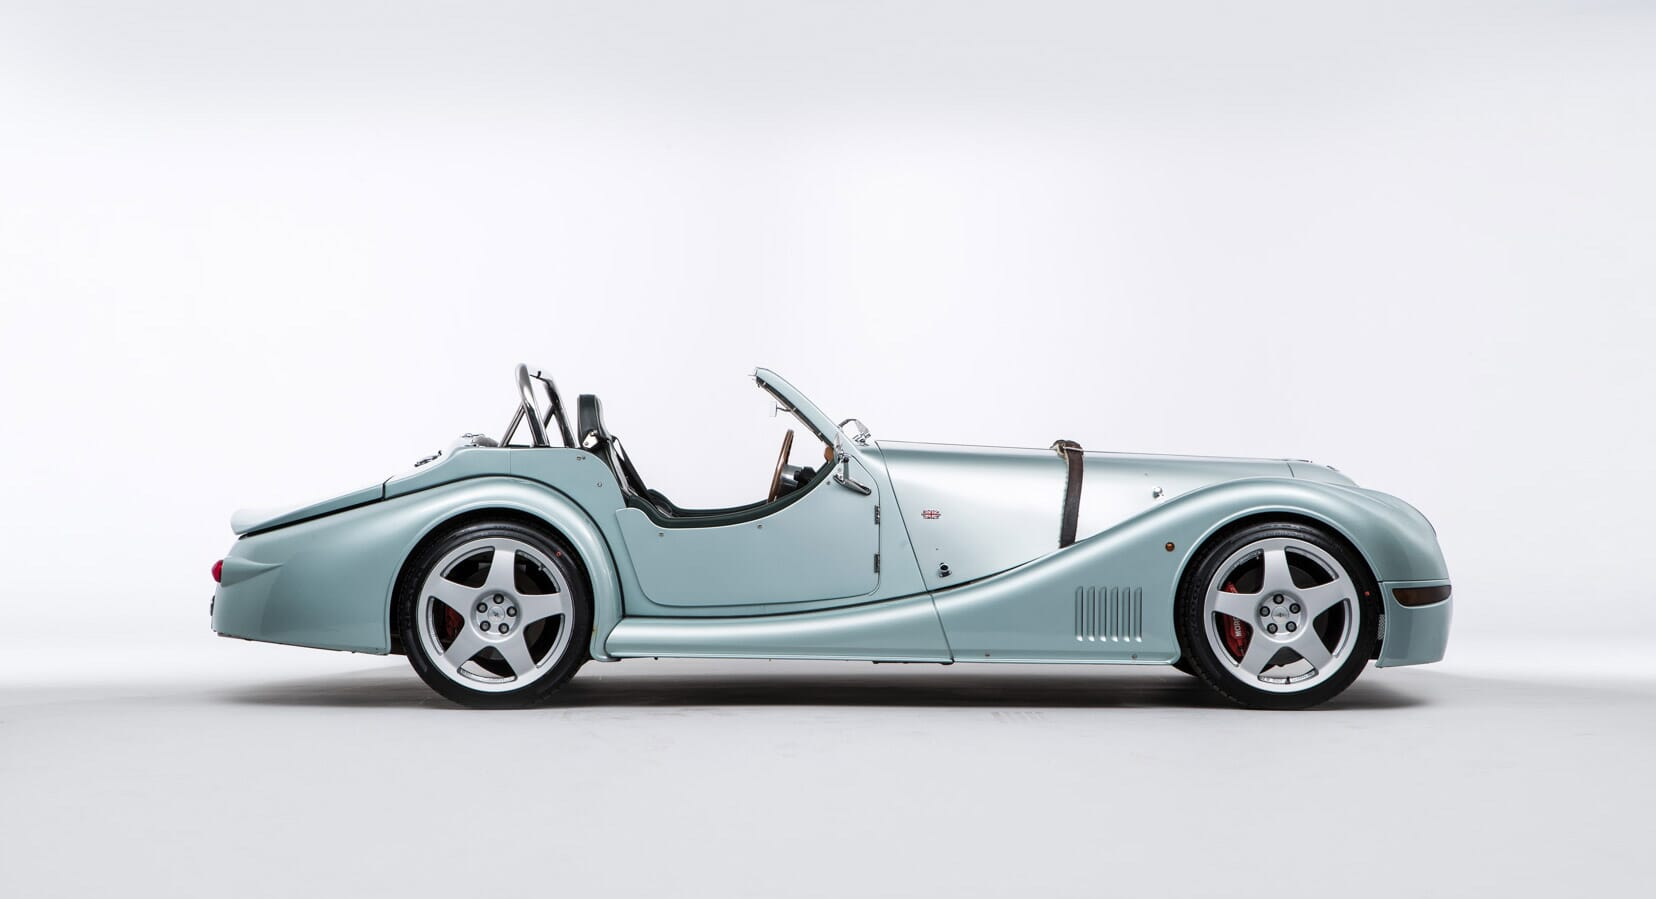 Is The Morgan Aero 8 The Most Underrated British Sports Car?